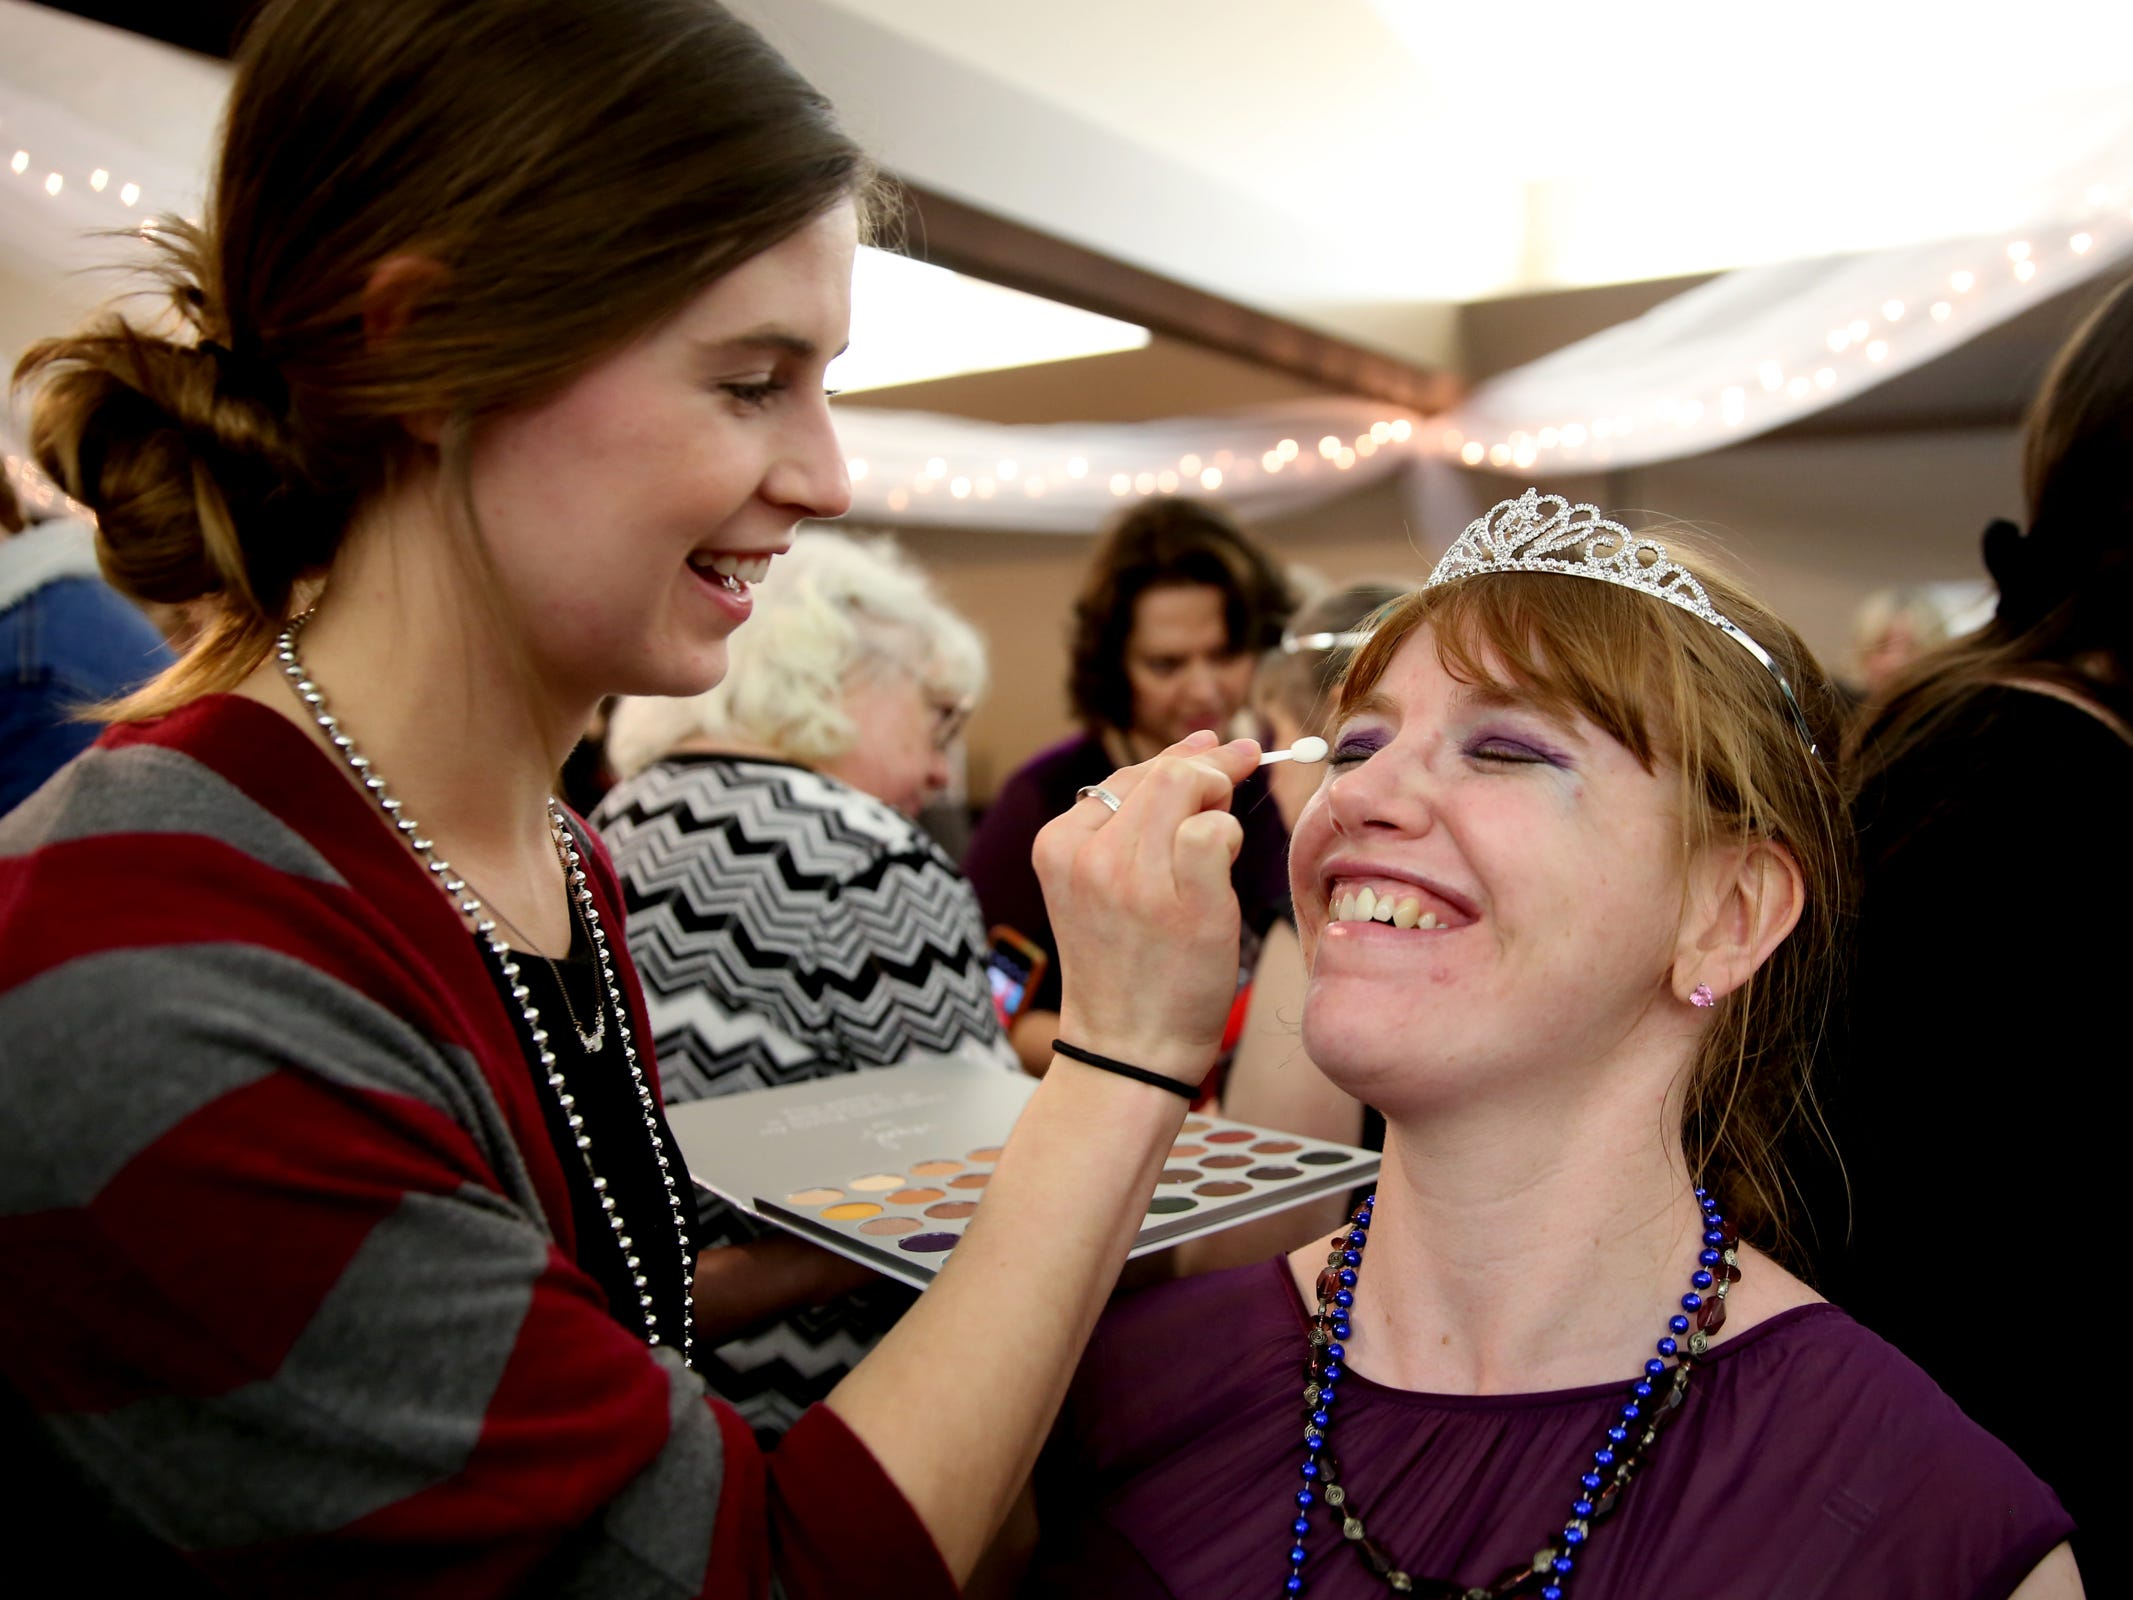 Kris Burden, 36, of Salem, has her makeup done by volunteer Sabrina Lozier at Night to Shine, a prom night experience for people with special needs, at Salem Alliance Church on Friday, Feb. 8, 2019.